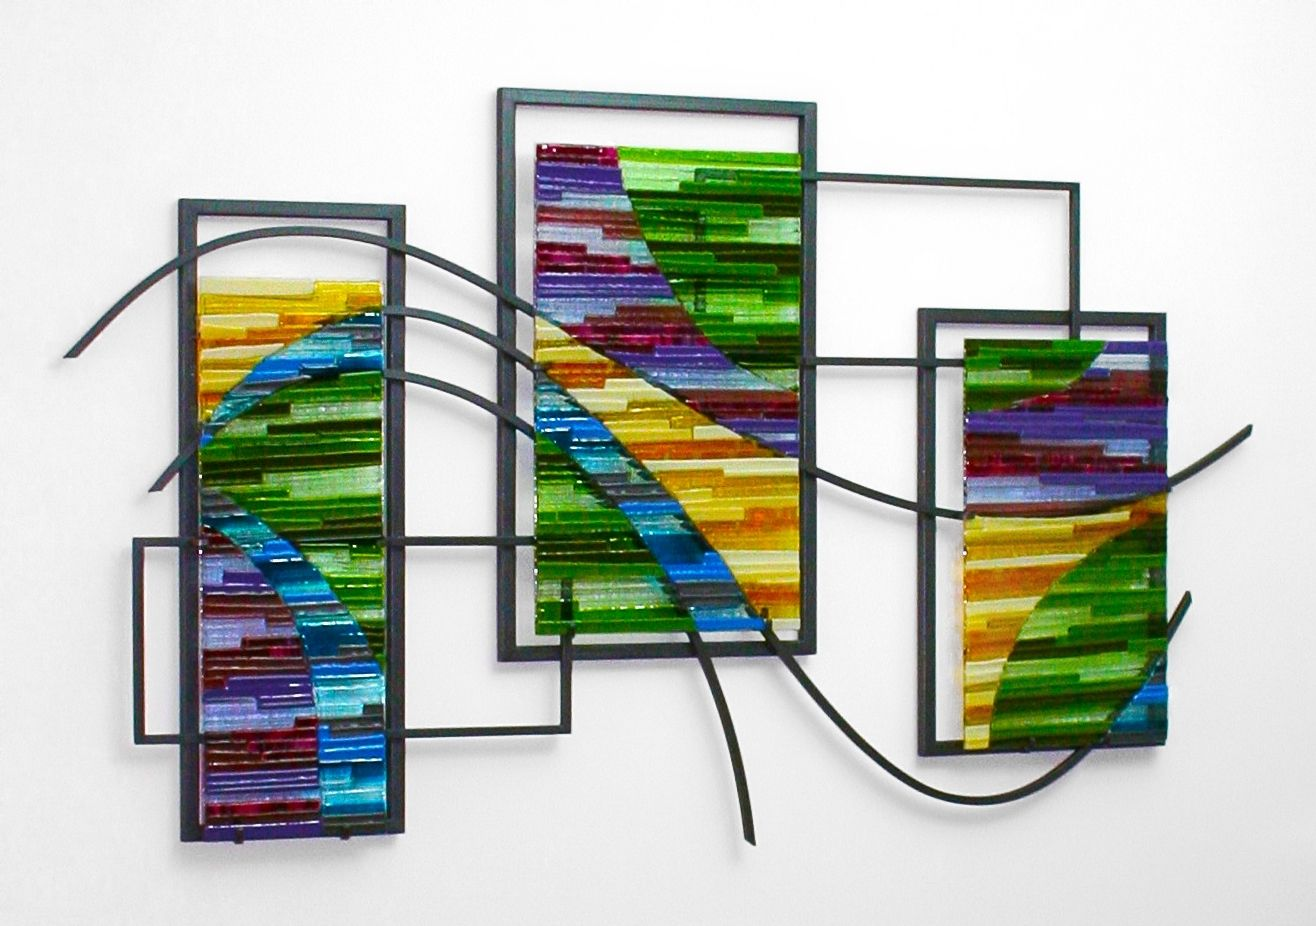 Wall Art Contemporary Glass : Custom made fused glass and metal wall art by bonnie m